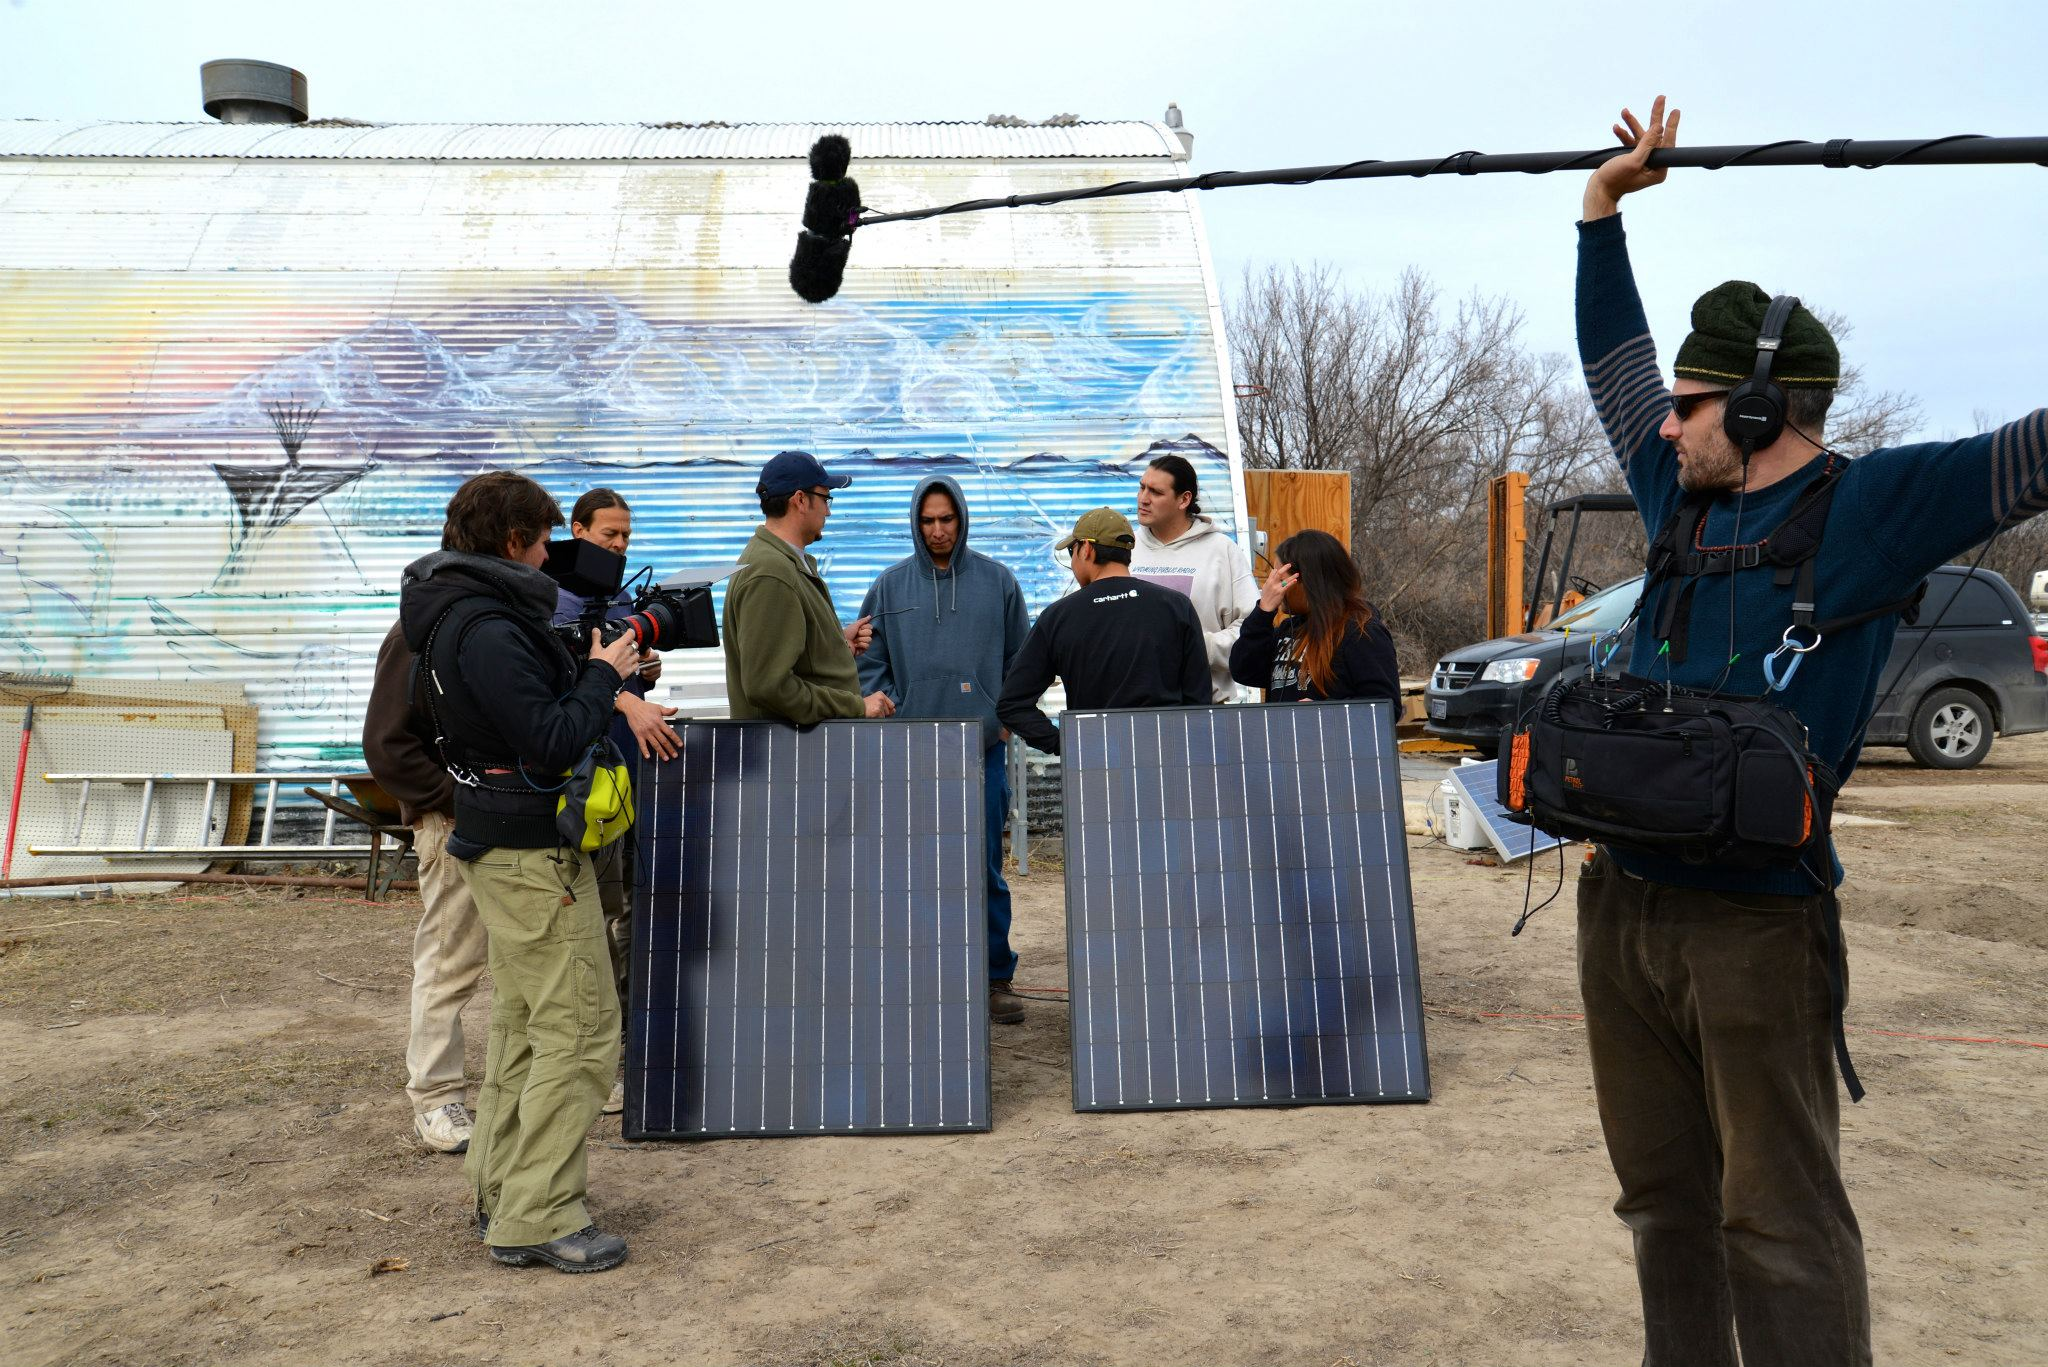 This Changes Everything crew filming students at the Red Cloud Renewable Energy Center. (Photo by Alexis Bonogofsky)